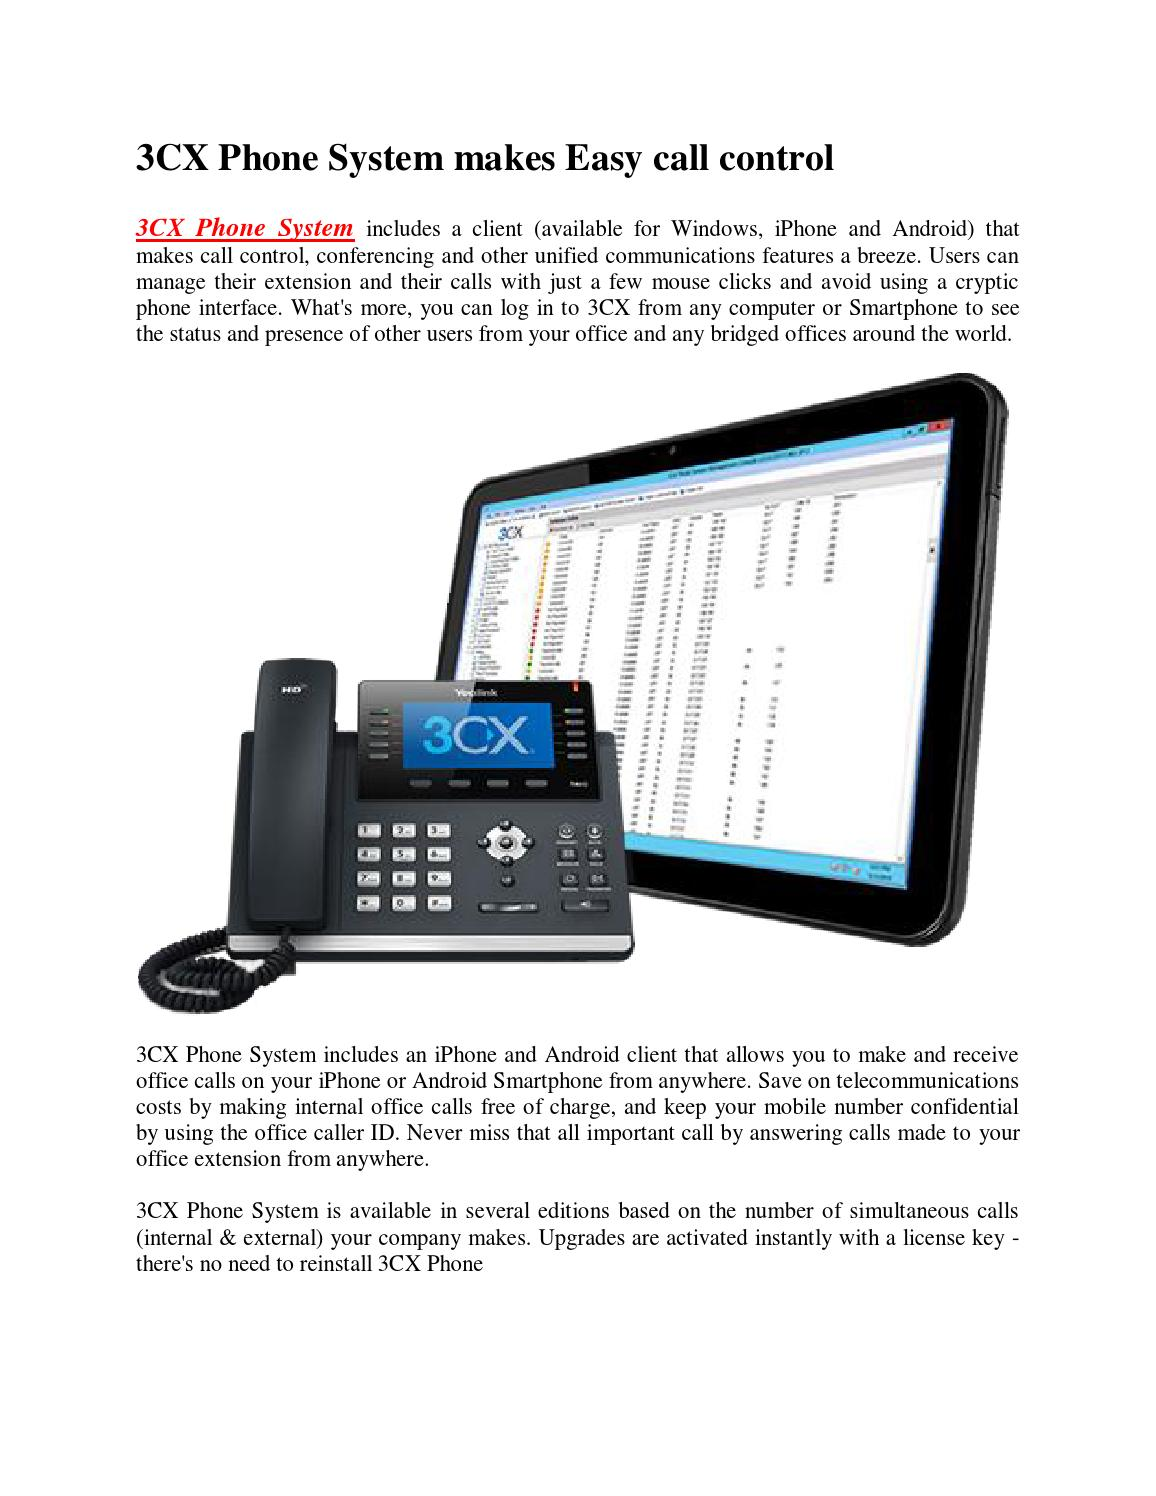 3cx phone system makes easy call control by Terence King - issuu